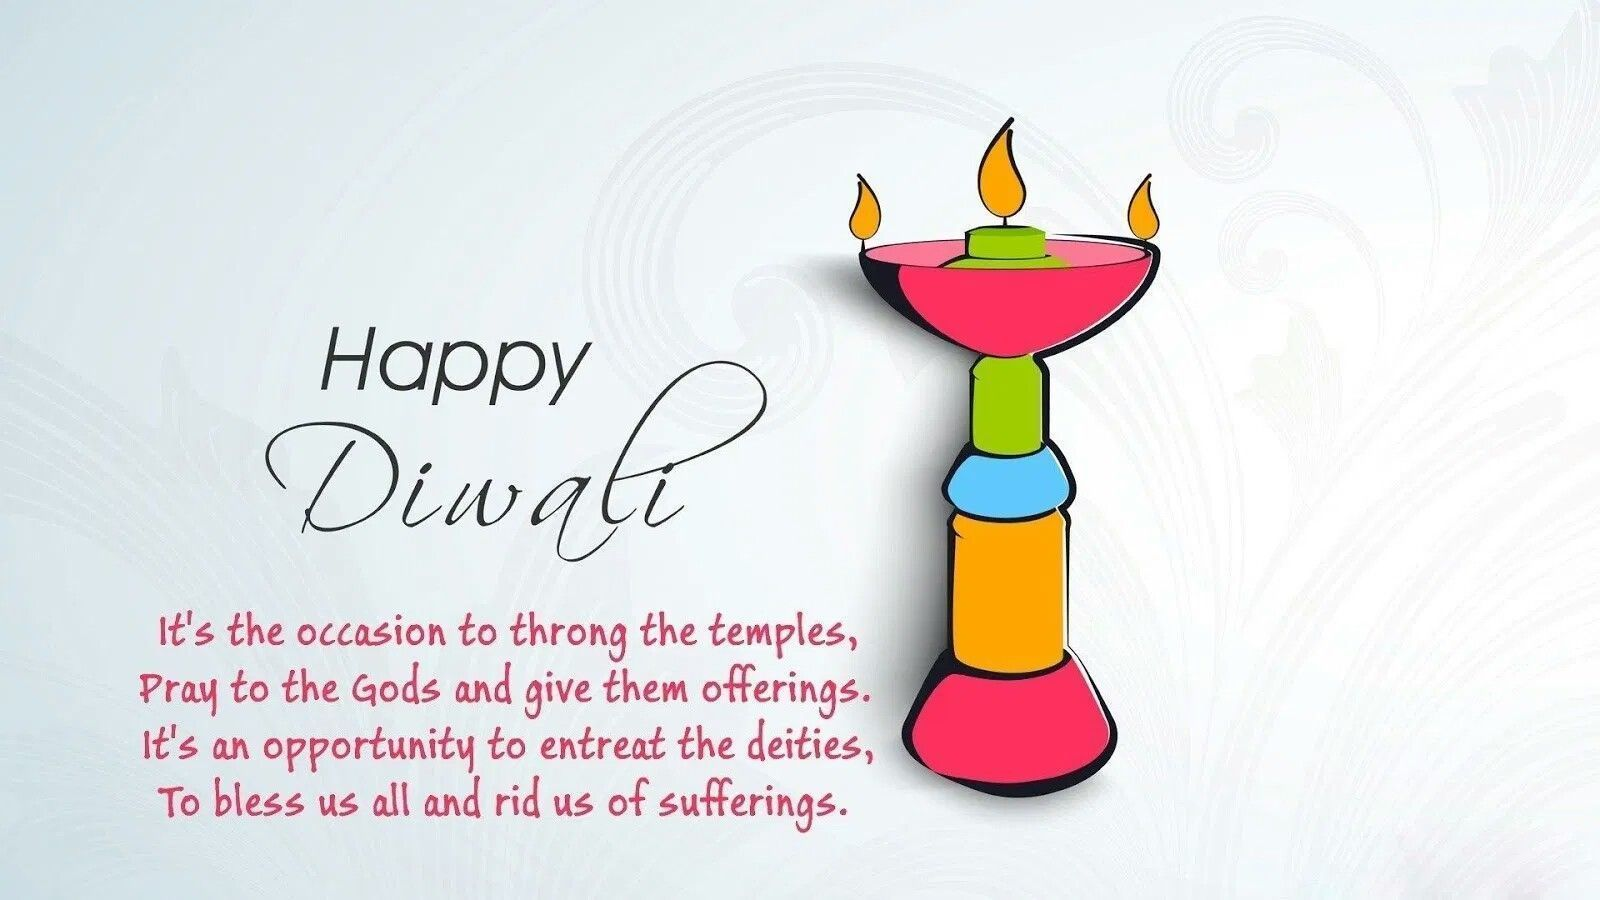 Happy Diwali 2019: Whatsapp Wishes, Shayari, Poetry, Quotes, Messages & SMS  Diwali Wishes Greetings, Diwali Wishes Messages, Happy Diwali Images, Happy Diwali Images with Family, Happy Diwali Quotes, Happy Diwali Wishes, Short Diwali Quotes. #happydiwaligreetings Happy Diwali 2019: Whatsapp Wishes, Shayari, Poetry, Quotes, Messages & SMS  Diwali Wishes Greetings, Diwali Wishes Messages, Happy Diwali Images, Happy Diwali Images with Family, Happy Diwali Quotes, Happy Diwali Wishes, Short Diwali #happydiwaligreetings